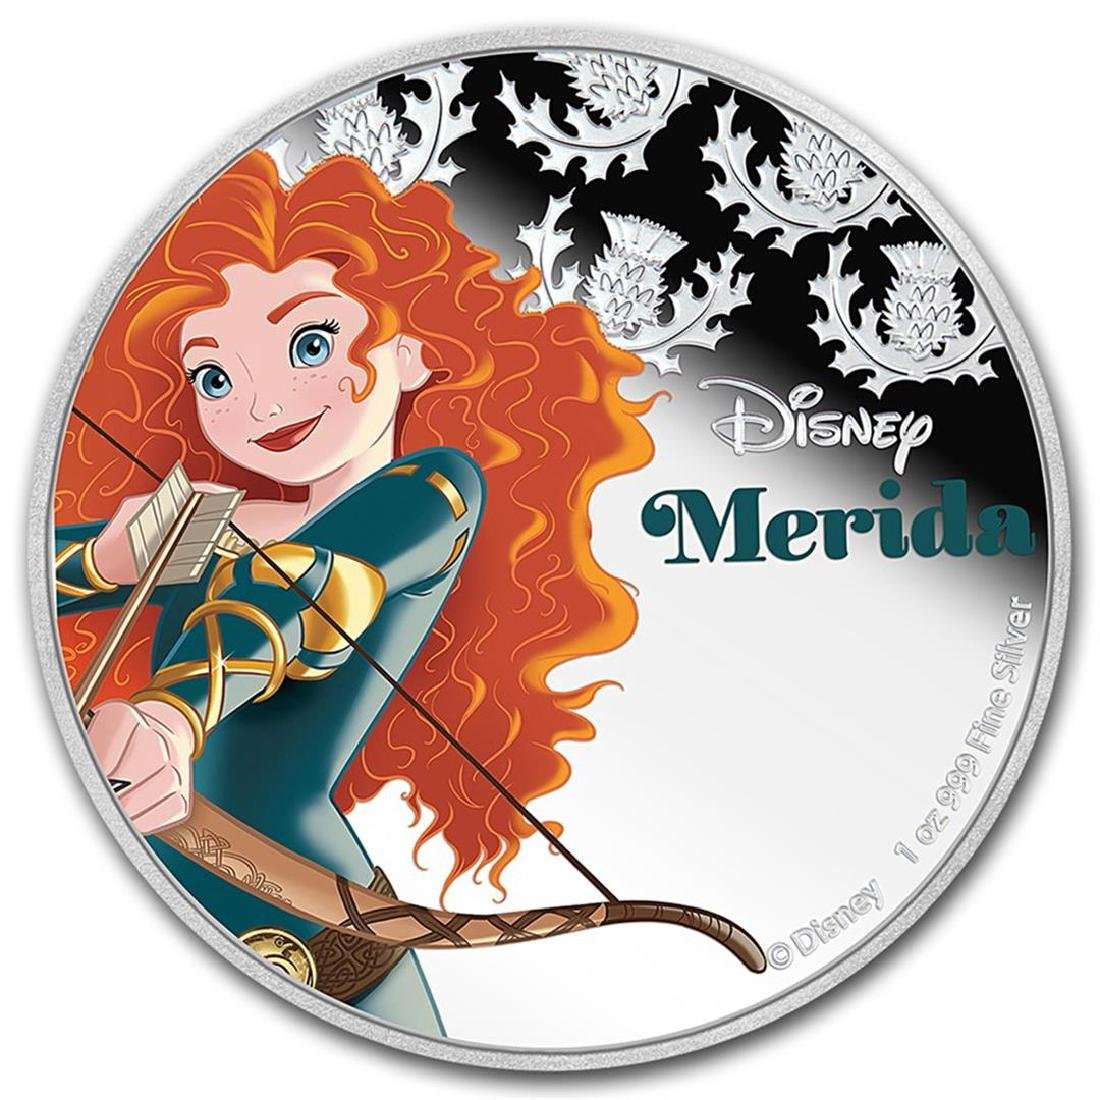 2016 $2 Disney Princess Merida .999 Fine Silver Proof